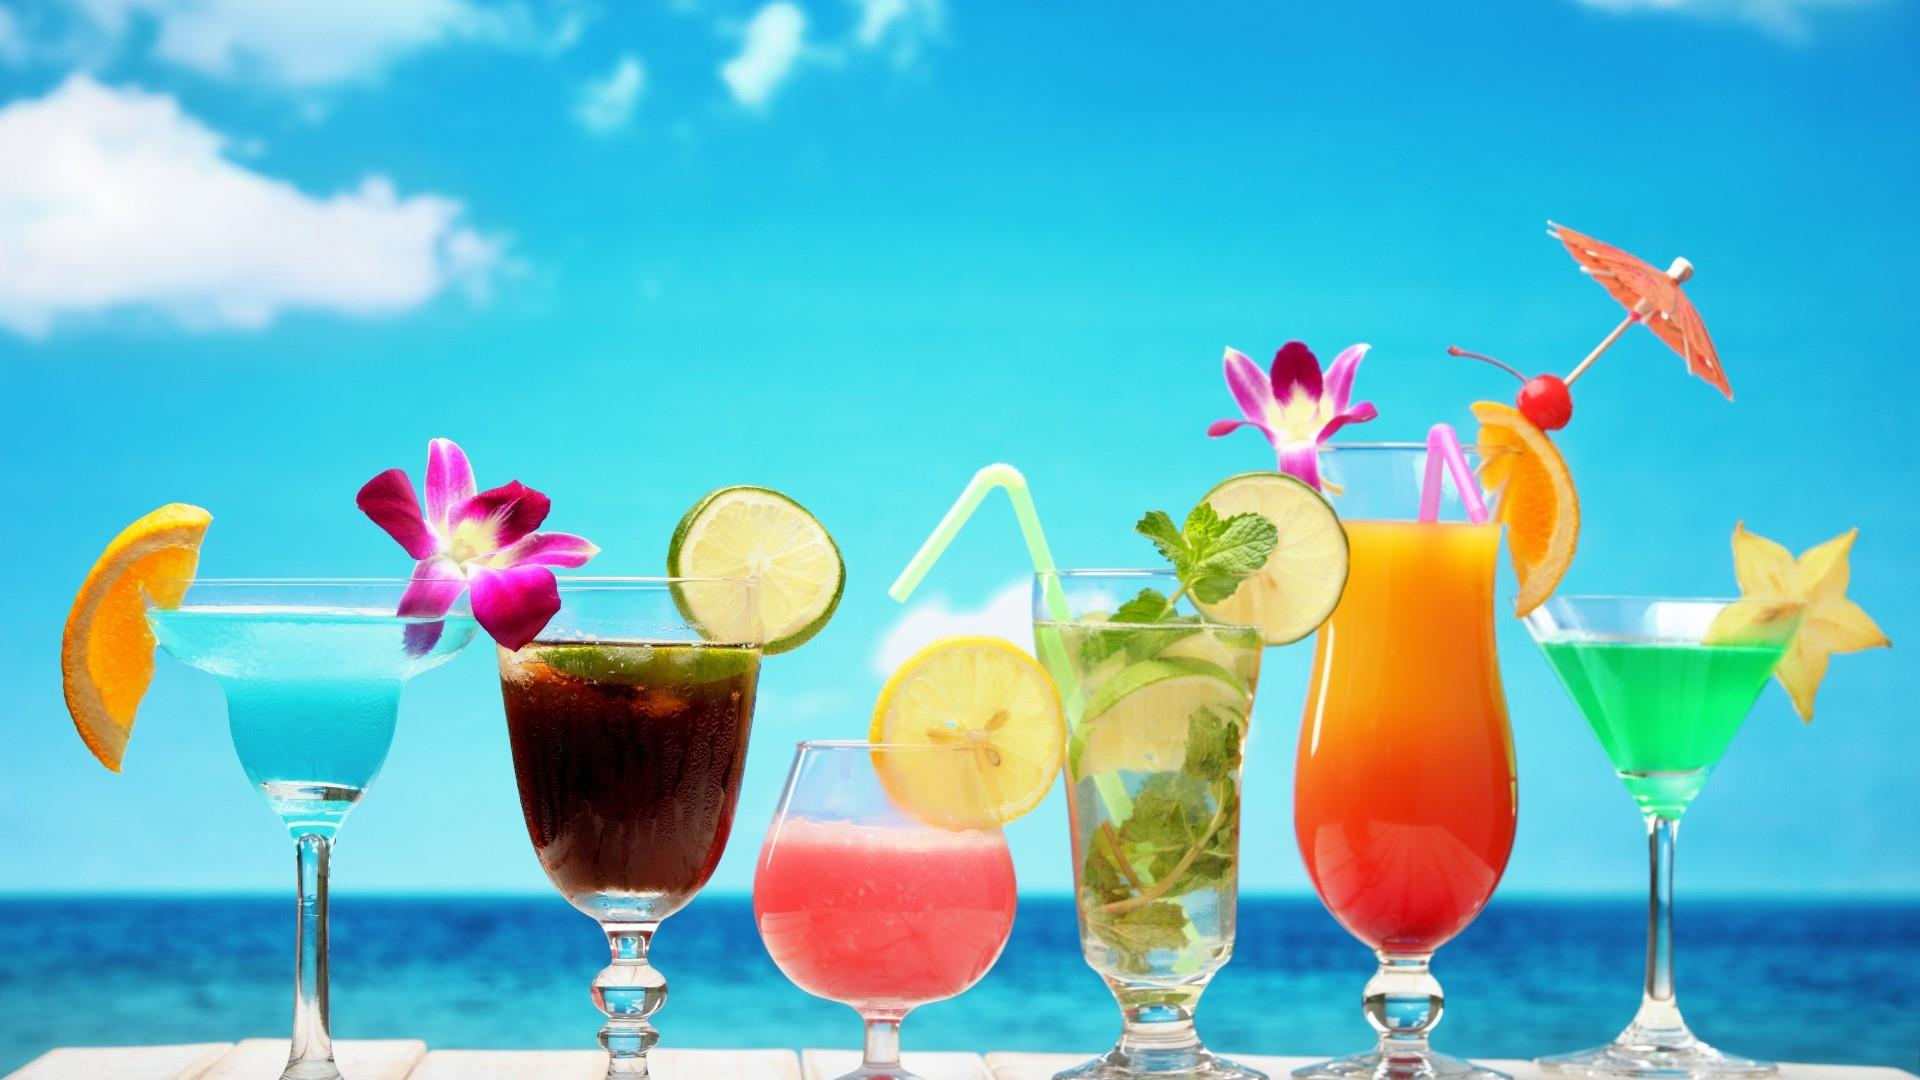 Cocktails on the beach wallpaper